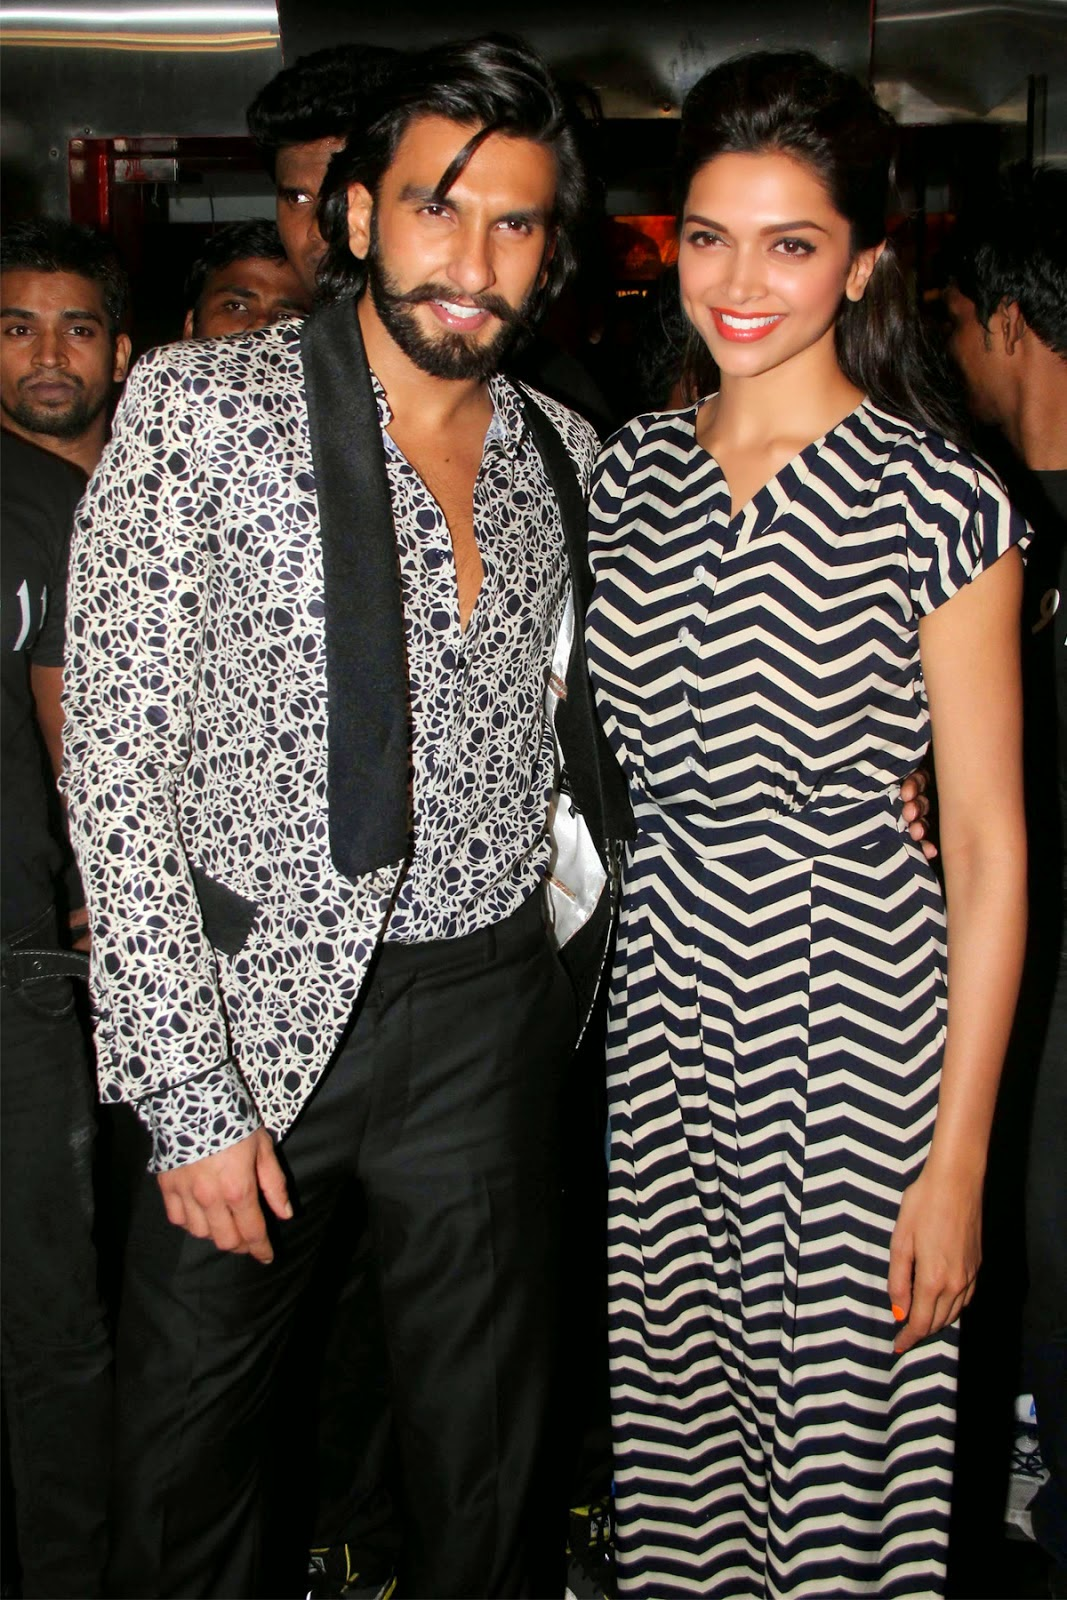 Ranveer Singh with deepika padukone hd wallpapers